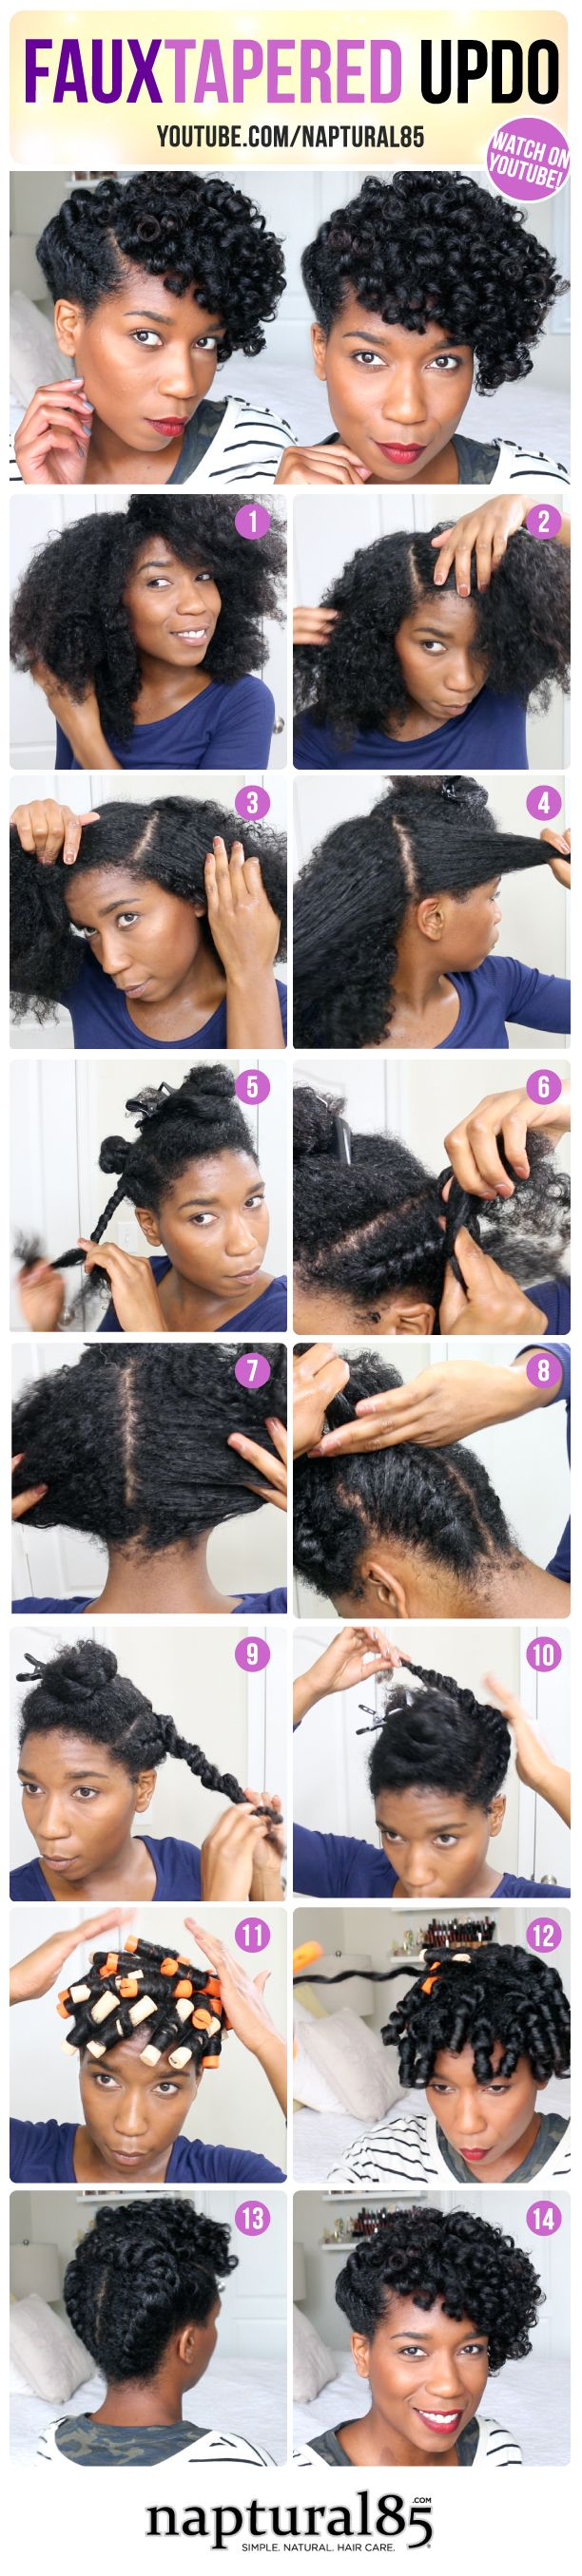 Naptural85 - Natural Hair Care Tips - Faux Tapered Updo